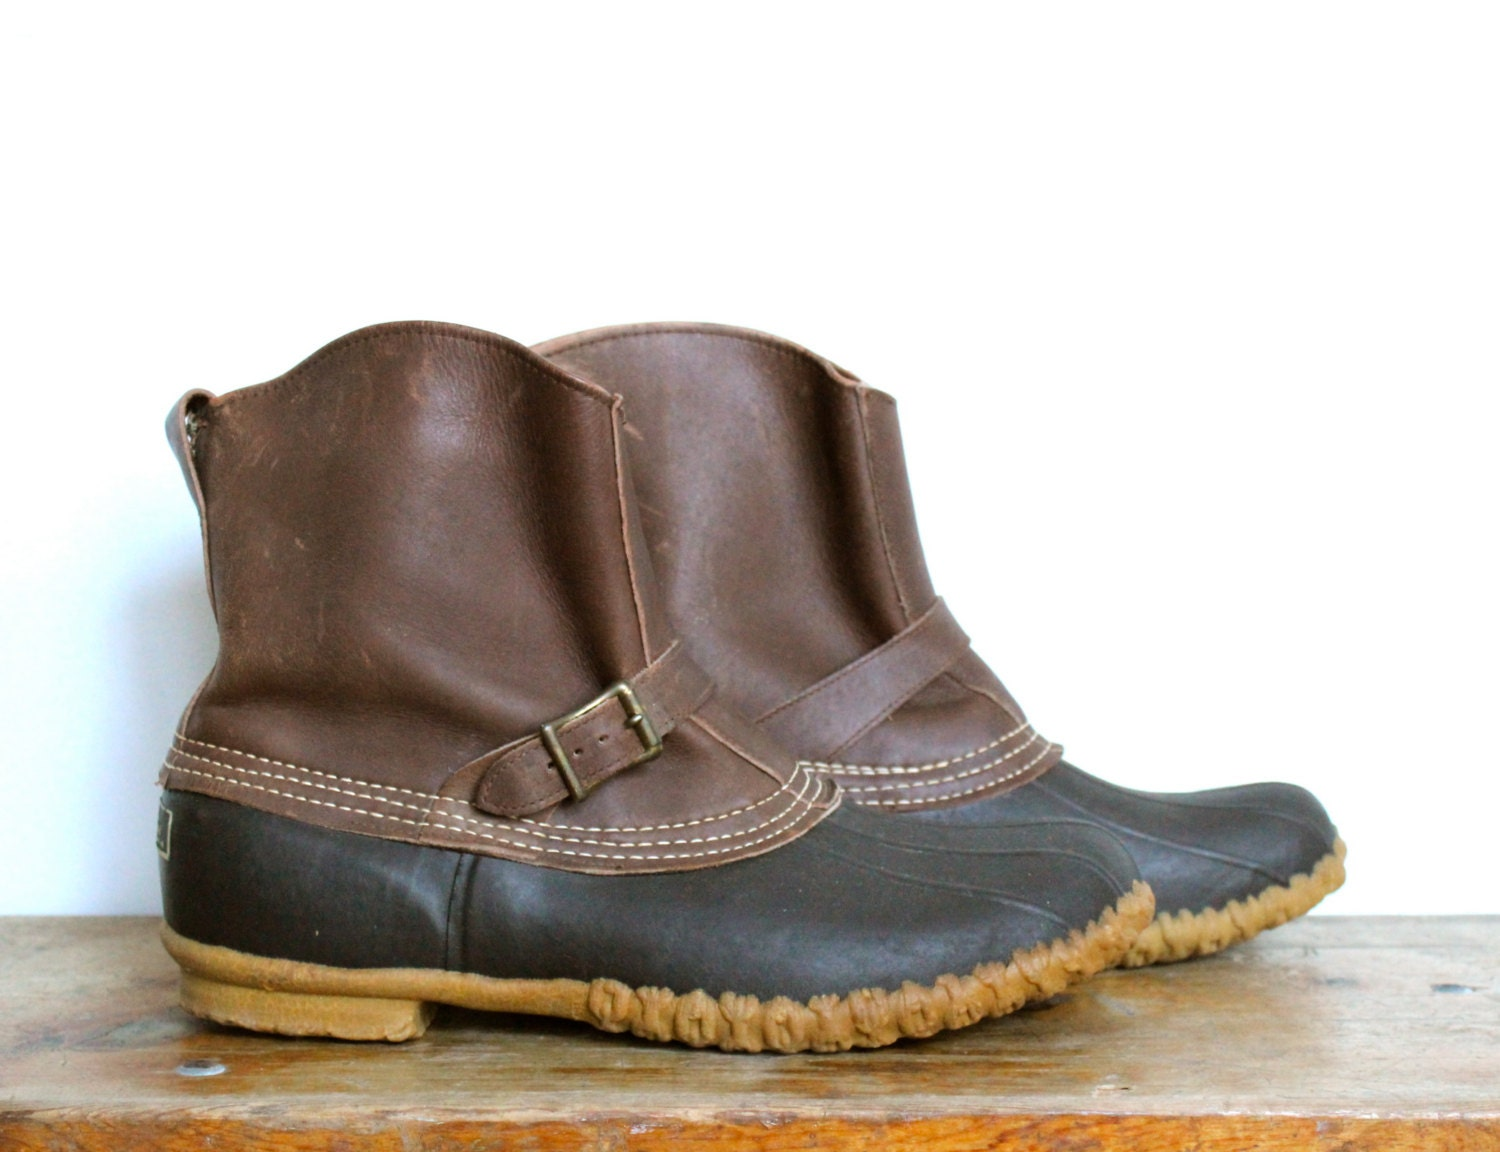 Wood's Boots isn't just a company founded, owned and operated in West Texas, we're a company that embodies the West Texas work ethic and lifestyle.